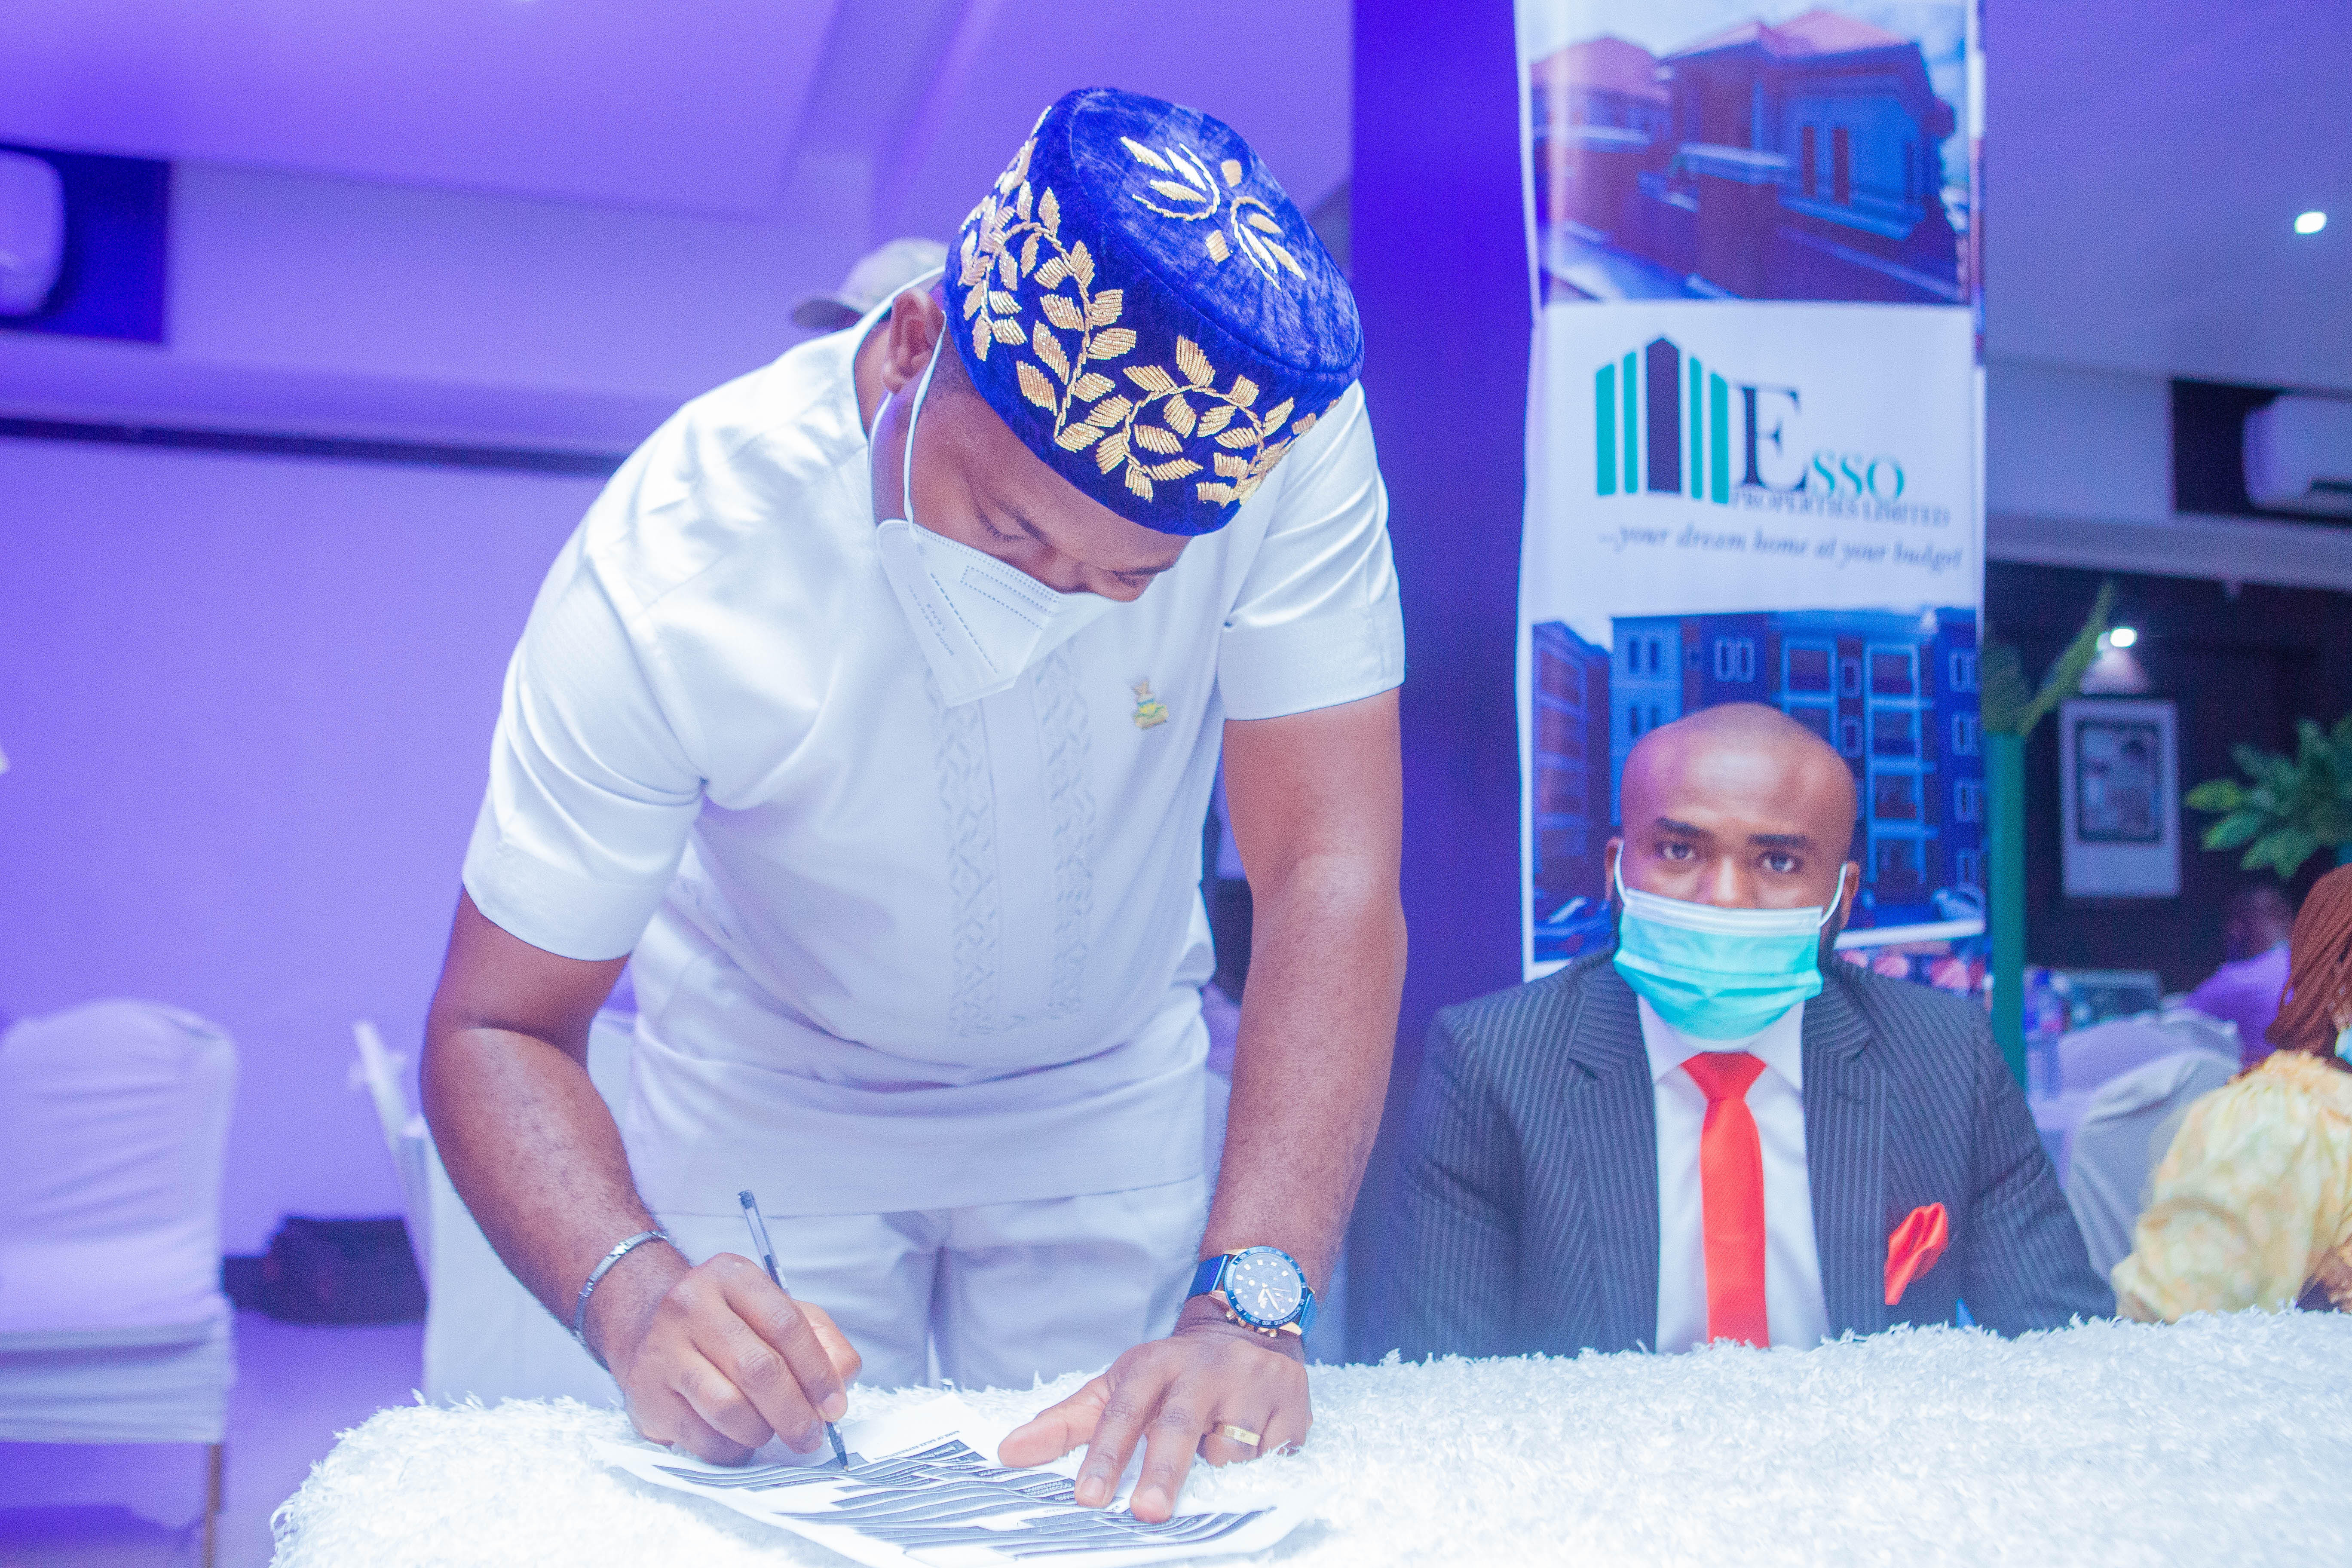 Anambra State Goes Agog as Esso Properties Limited Launches Two Estates